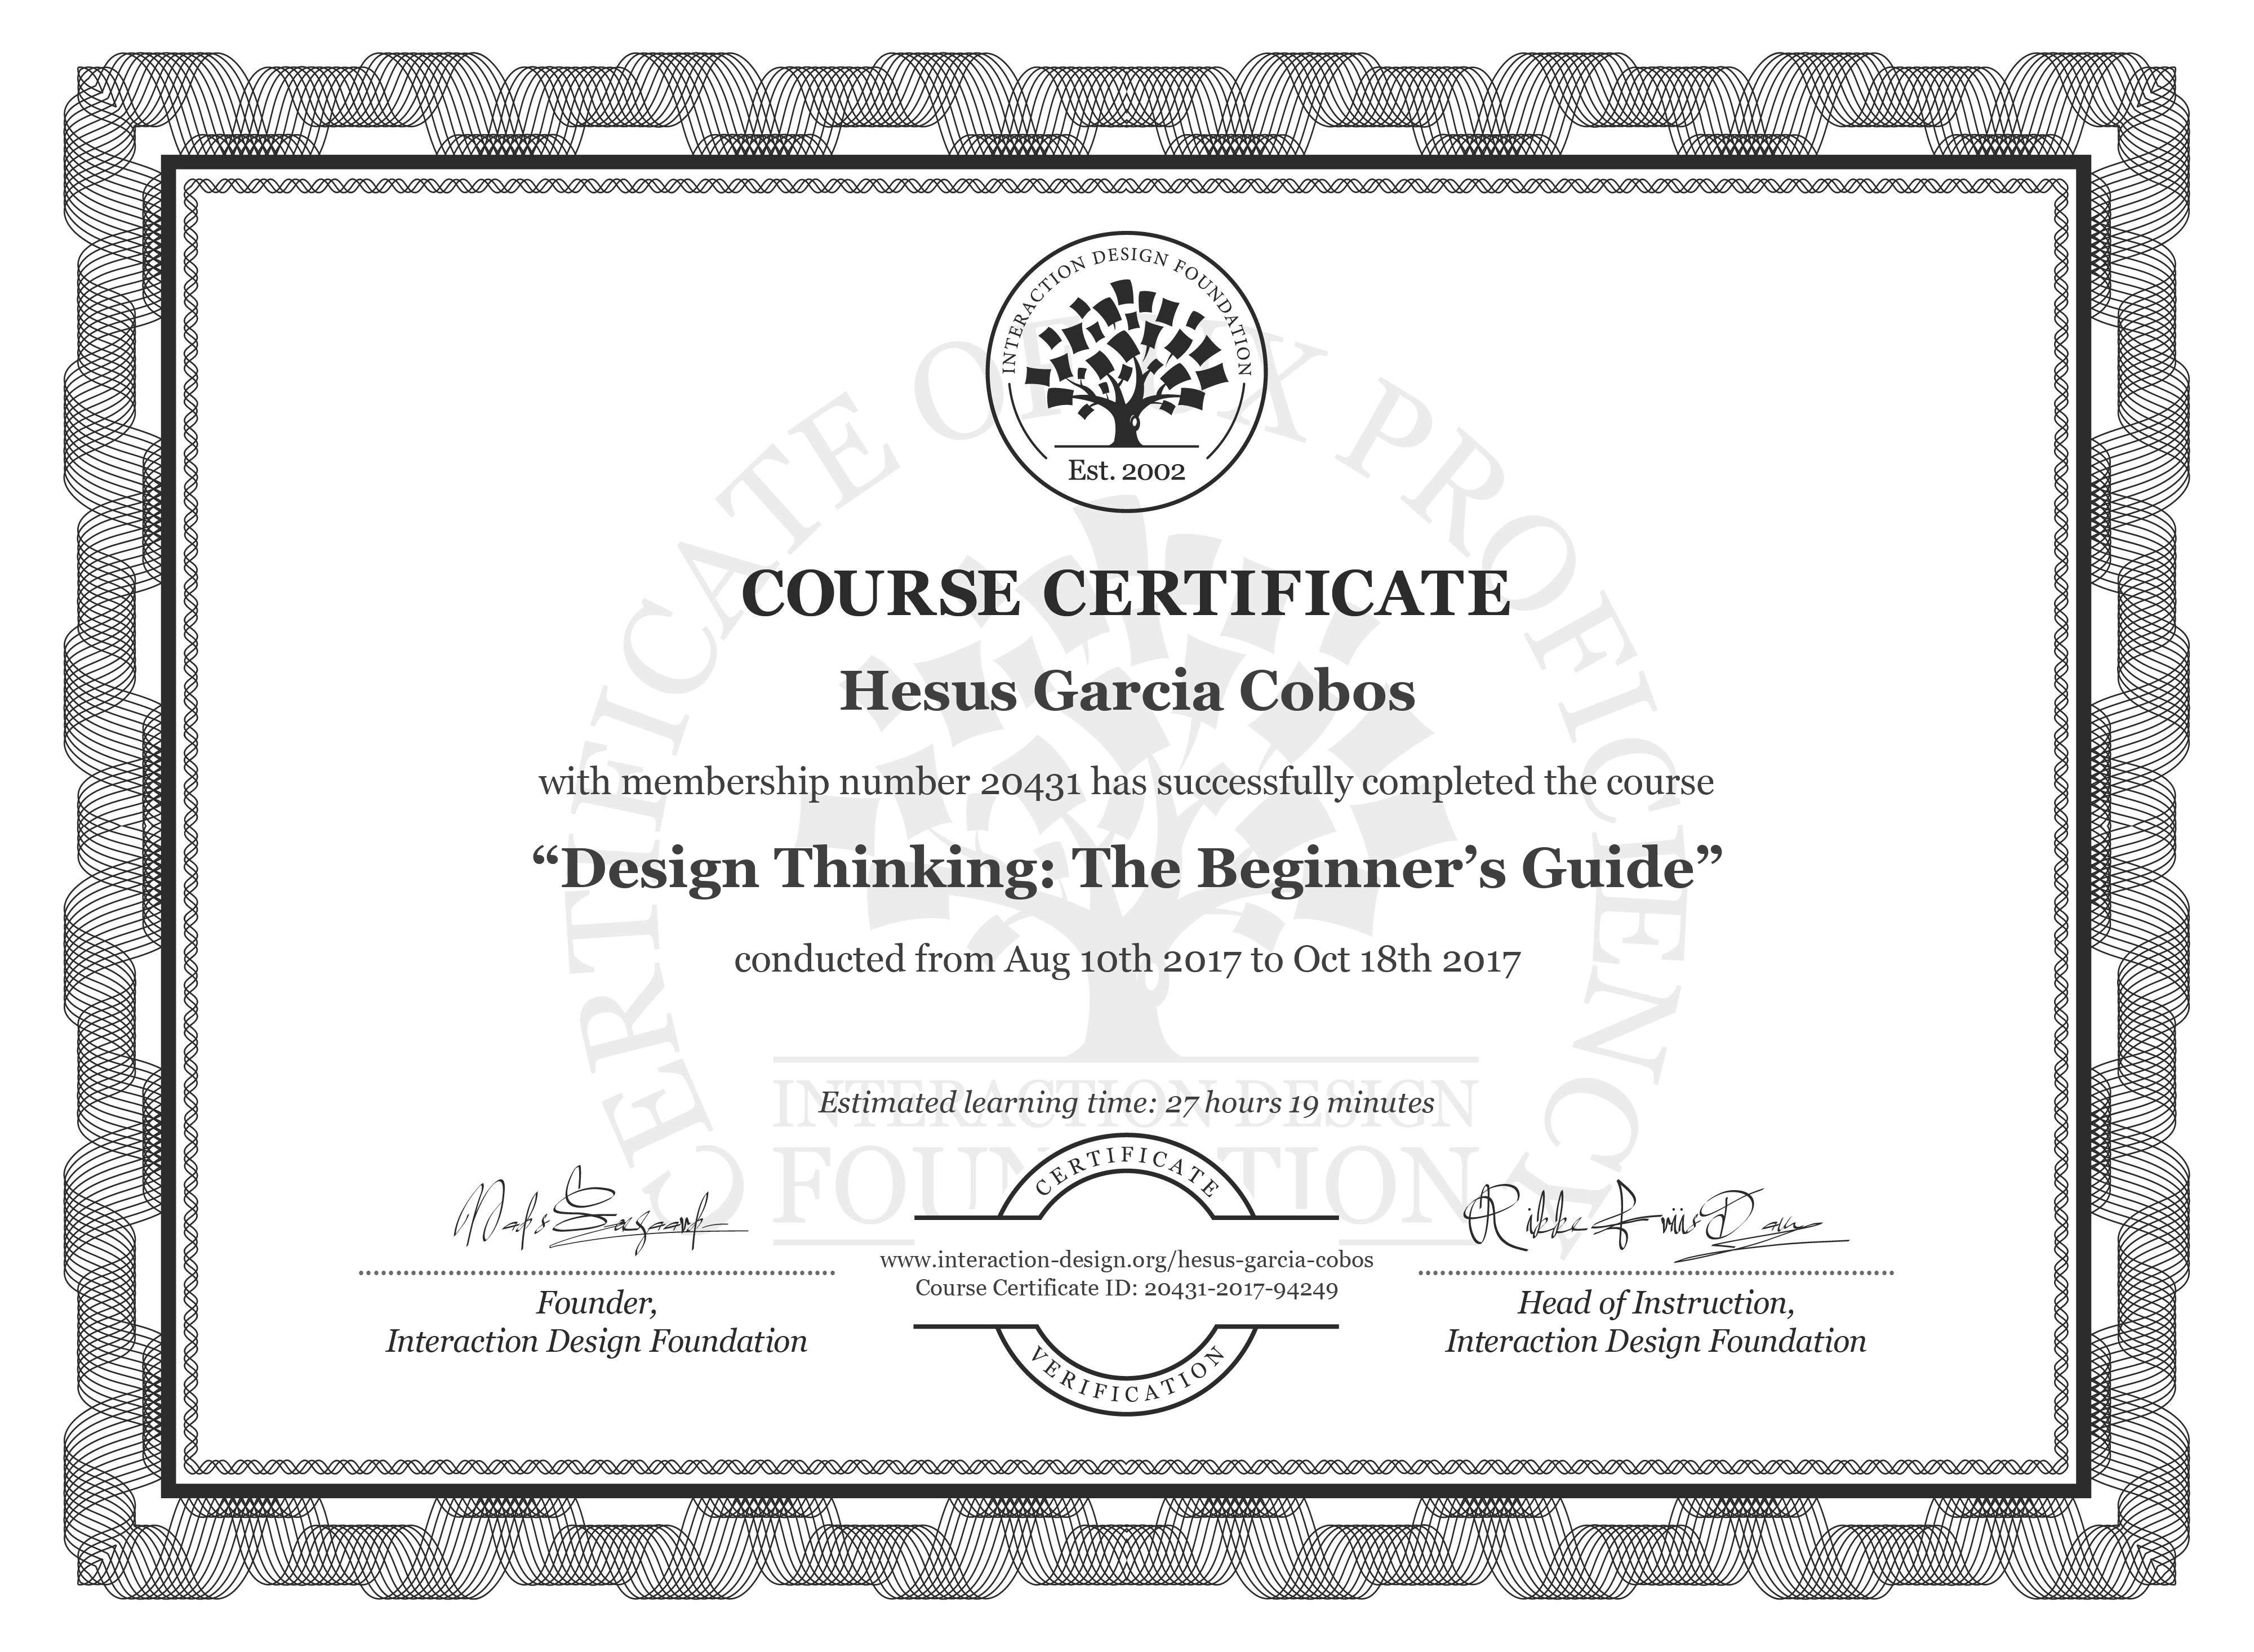 Hesus Garcia Cobos: Course Certificate - Design Thinking: The Beginner's Guide